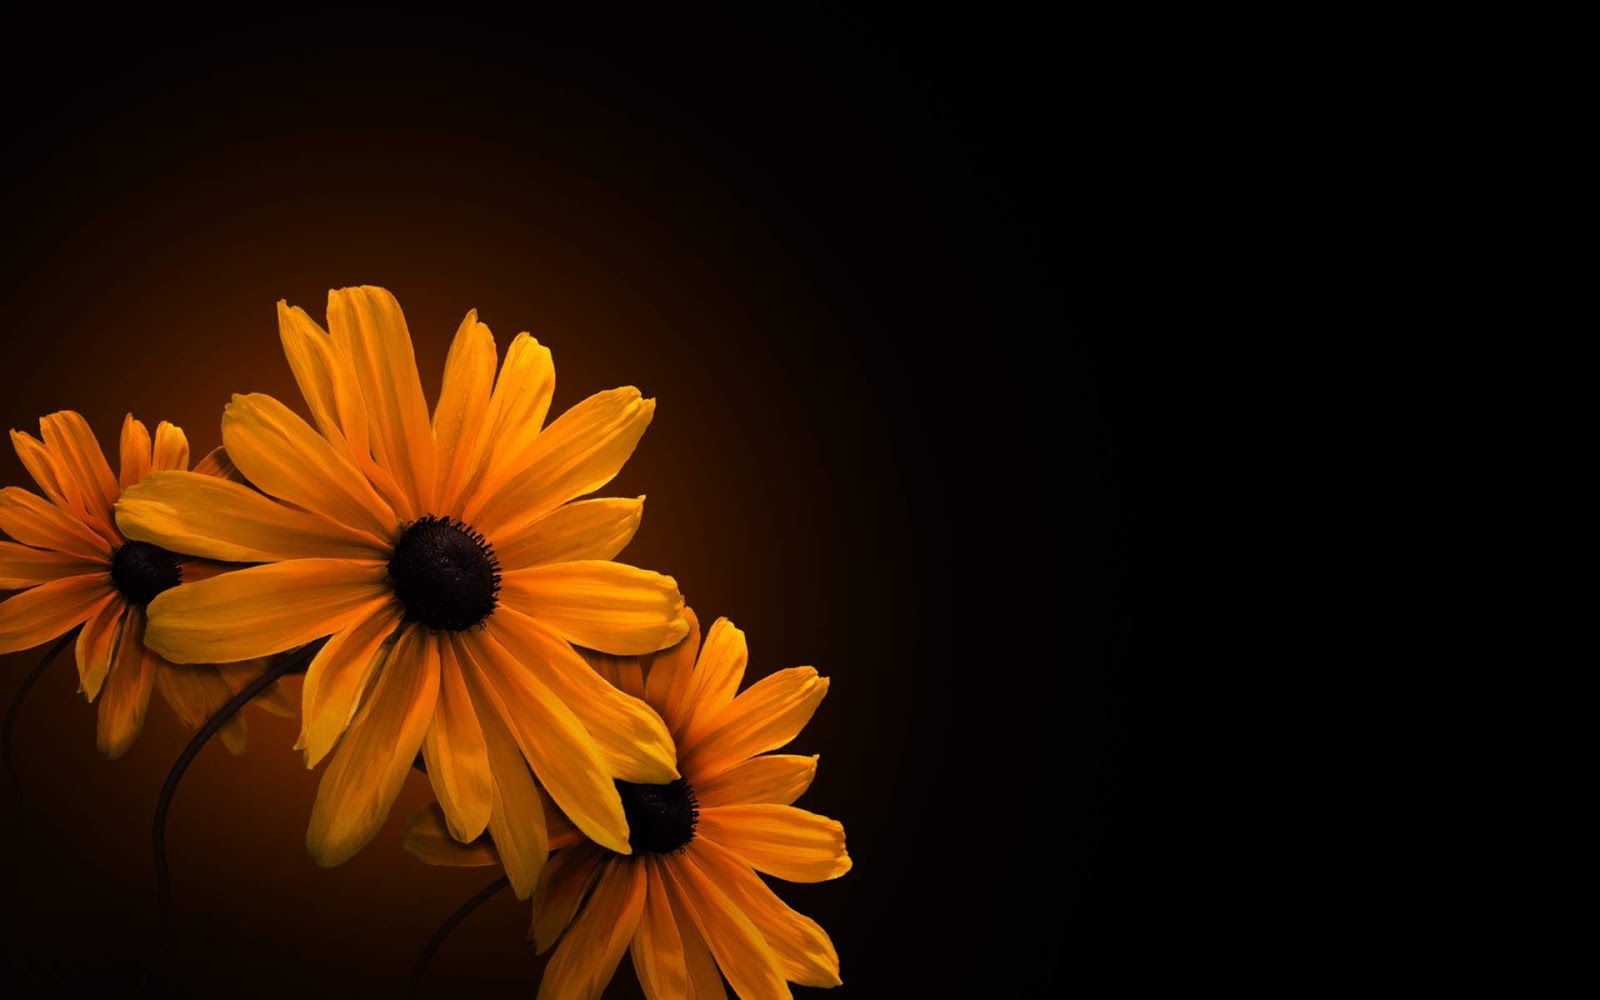 backgrounds hd with orange flower on black background wallpaper in 1600x1000